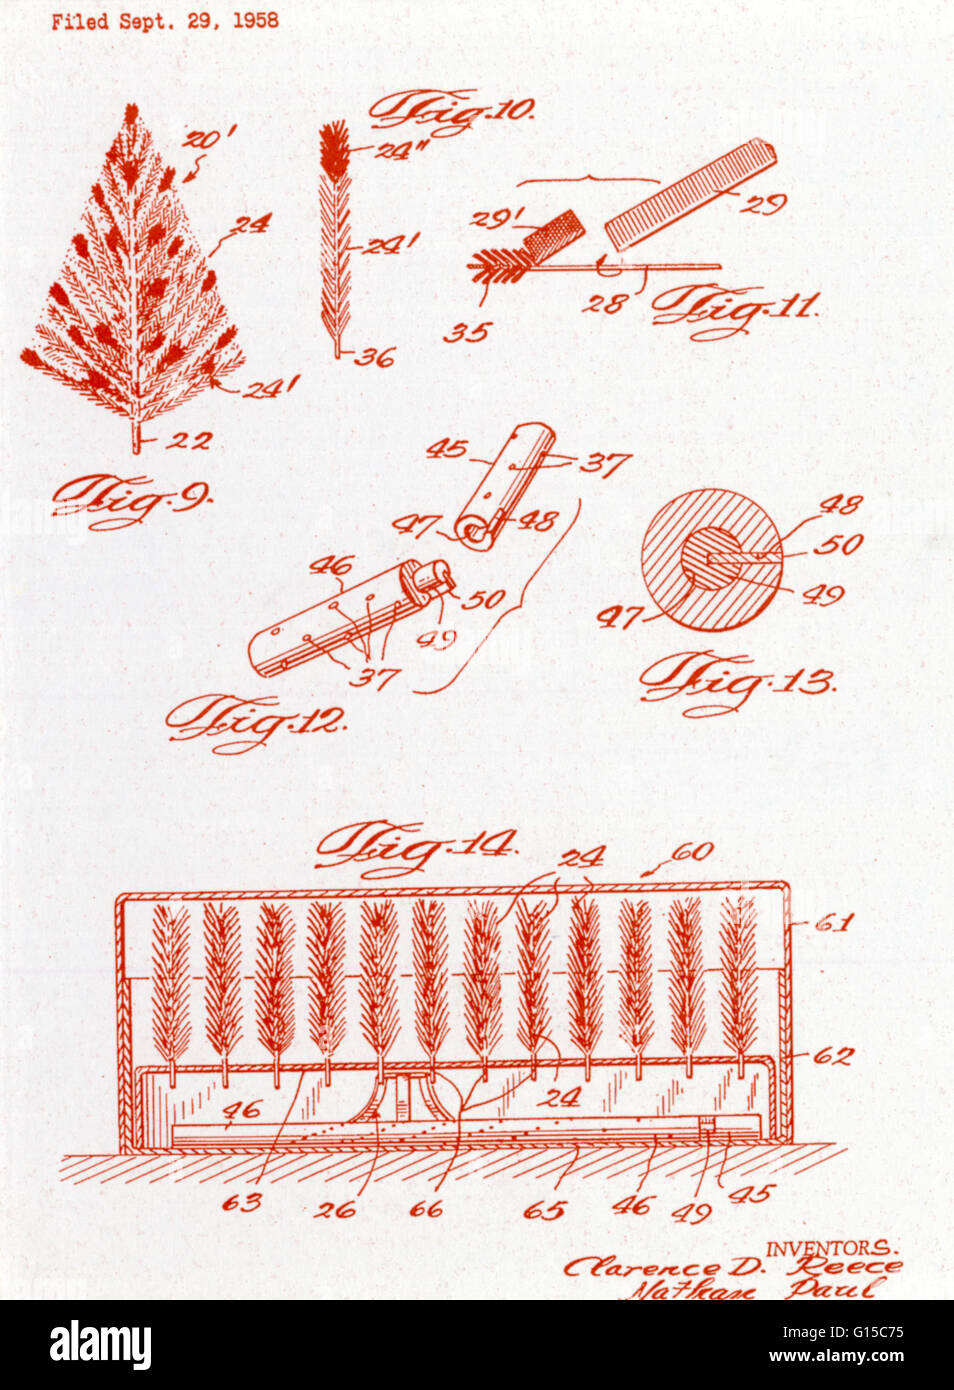 hight resolution of diagram of an aluminum christmas tree submitted for a u s patent file on september 29 1958 by inventors clarence d reece and nathan paul